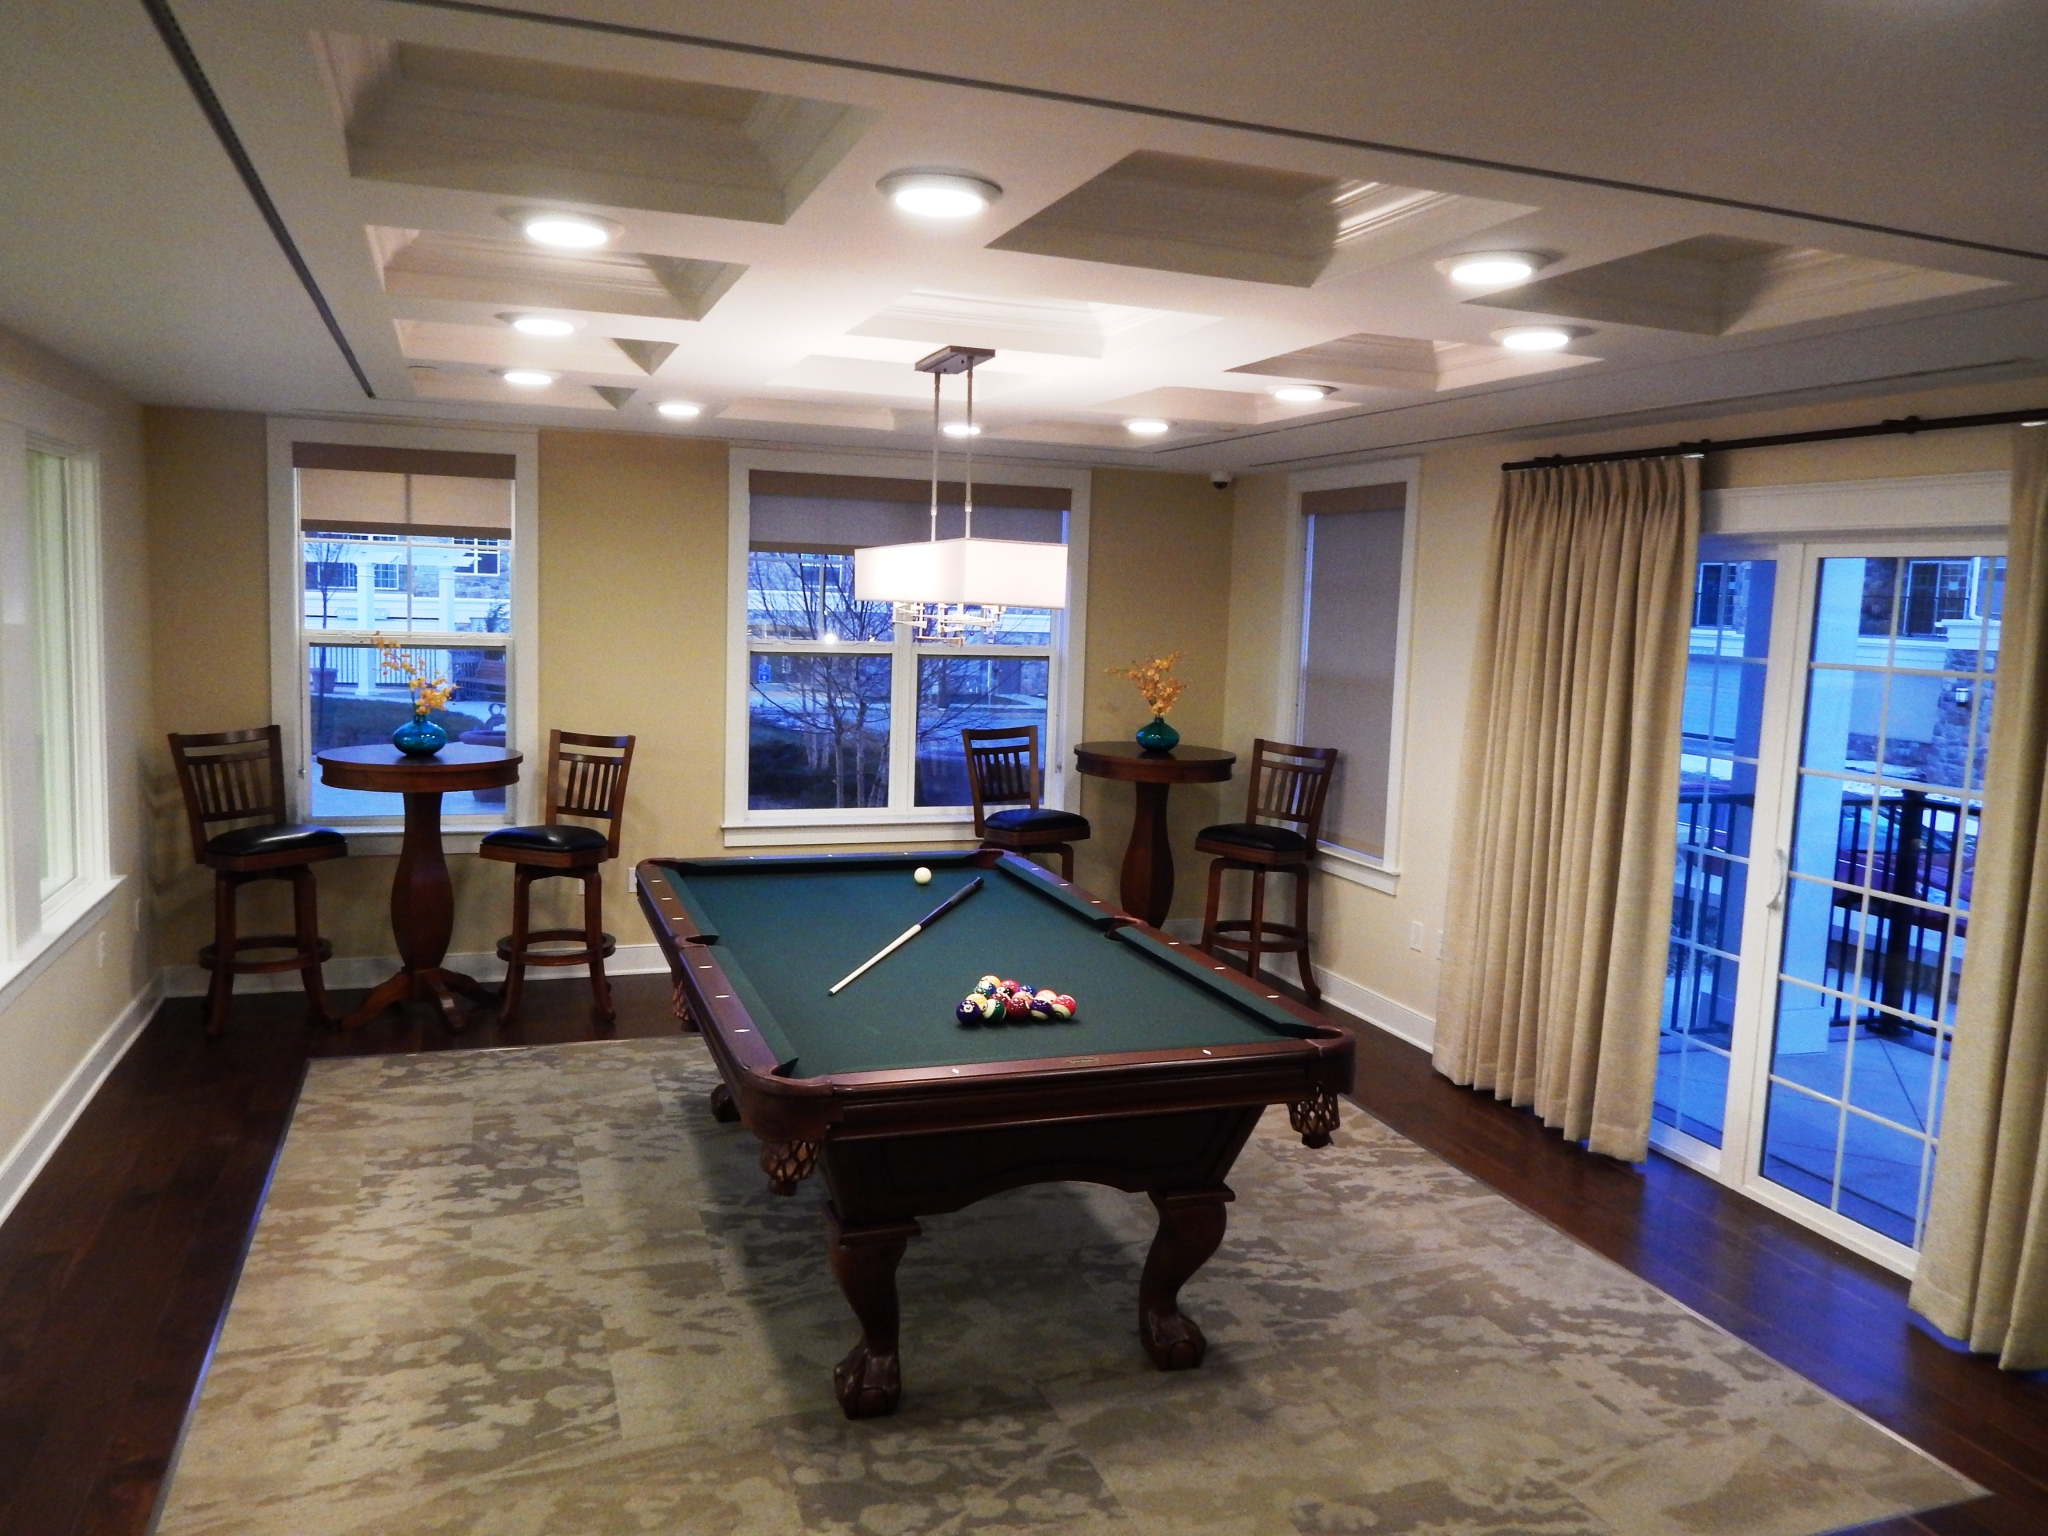 Pool Table at Palmer View